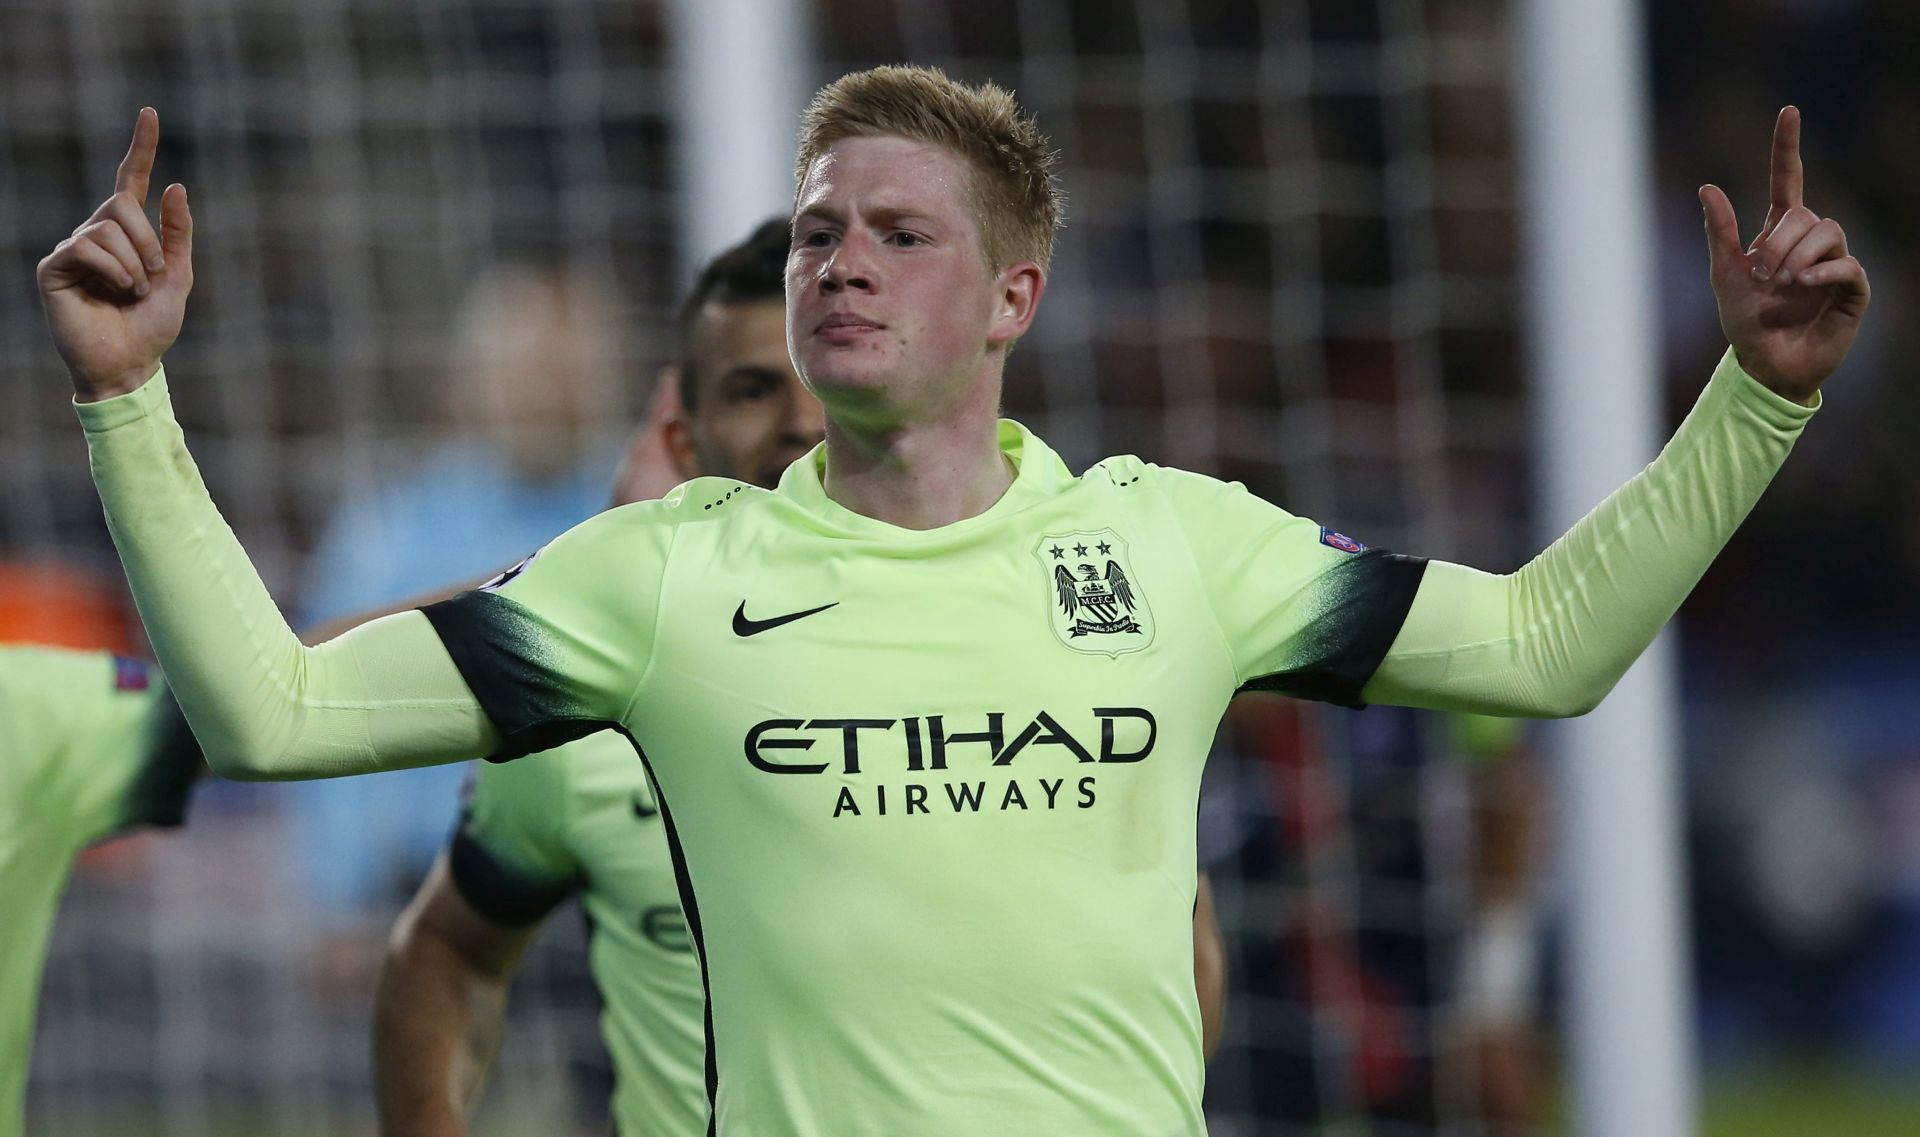 Manchester City – West Bromwich Albion 2-1